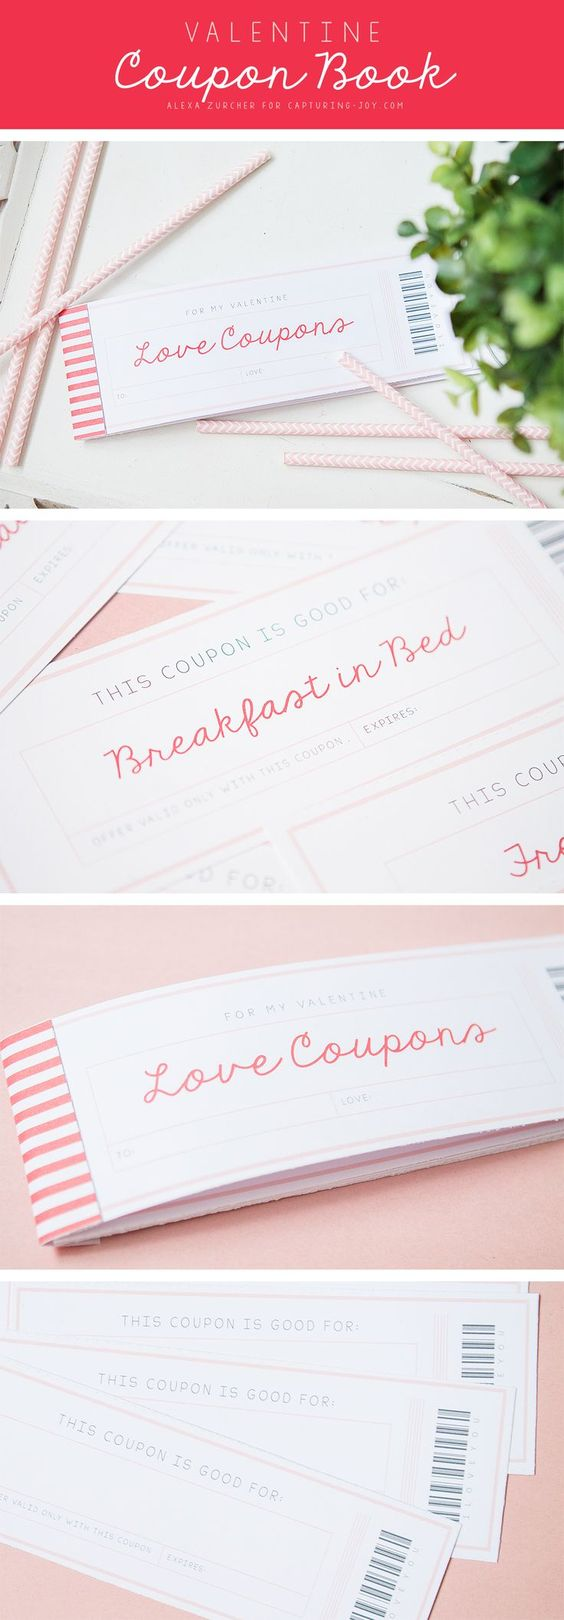 Quick and Easy FREE Printables - Valentine's Day Gift Coupon Book via Capturing Joy with Kristen Duke